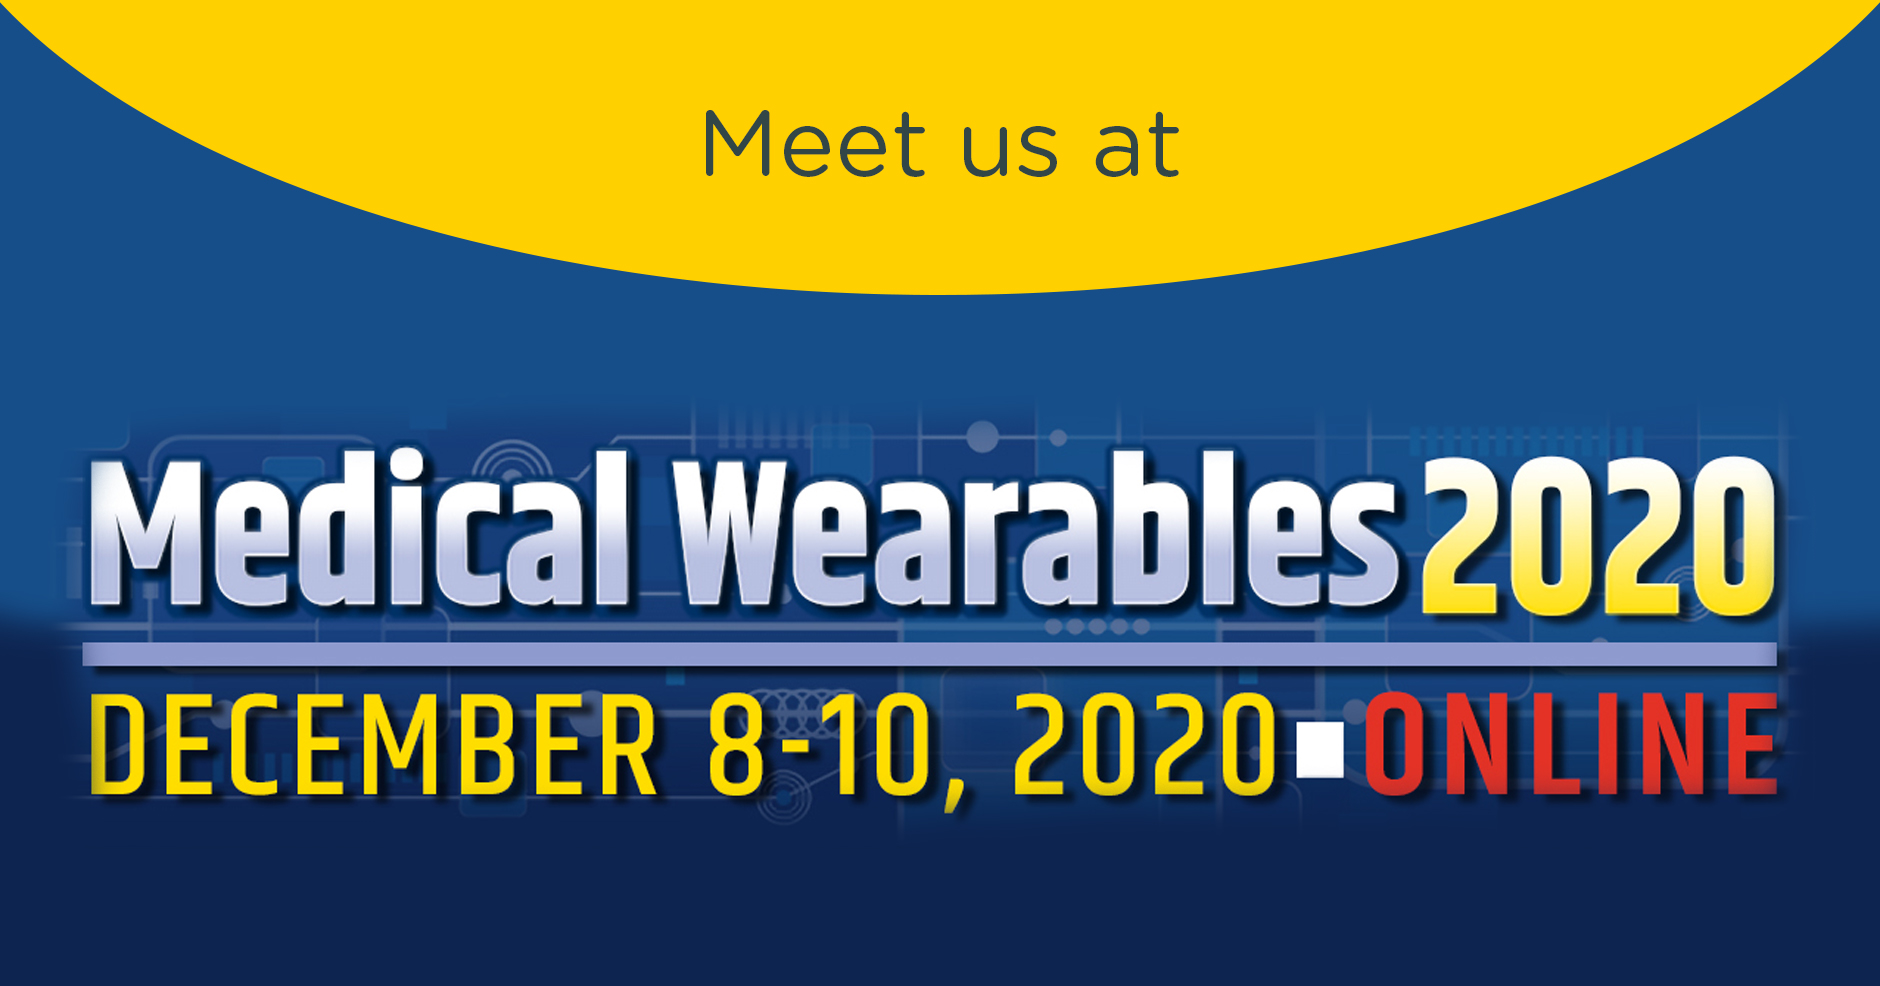 Medical Wearables 2020